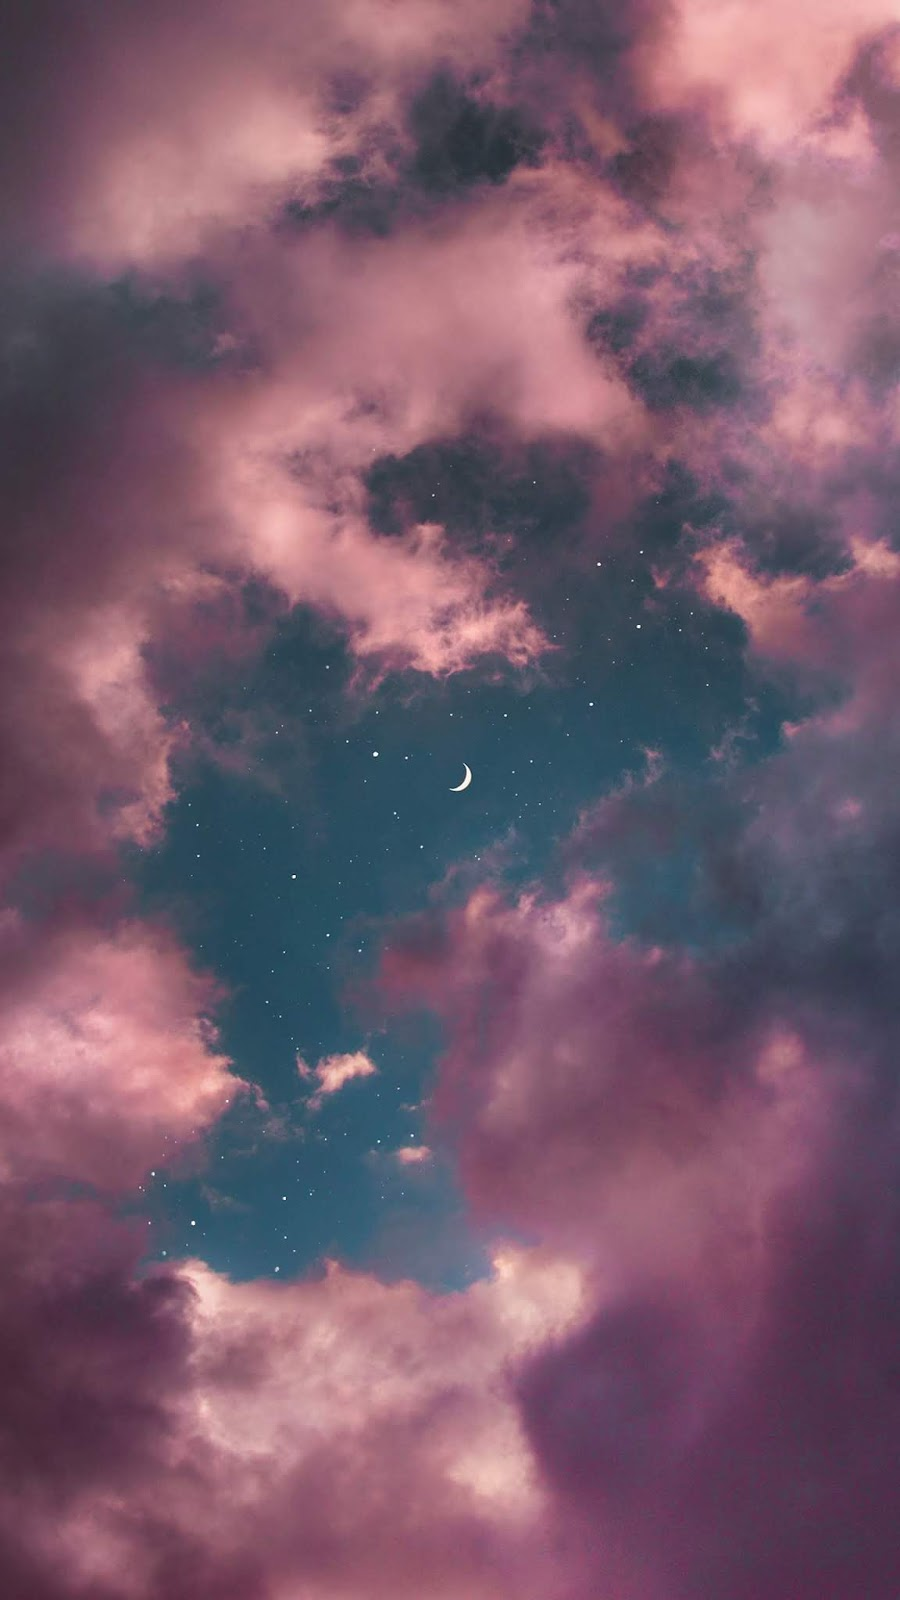 Aesthetic moon wallpaper